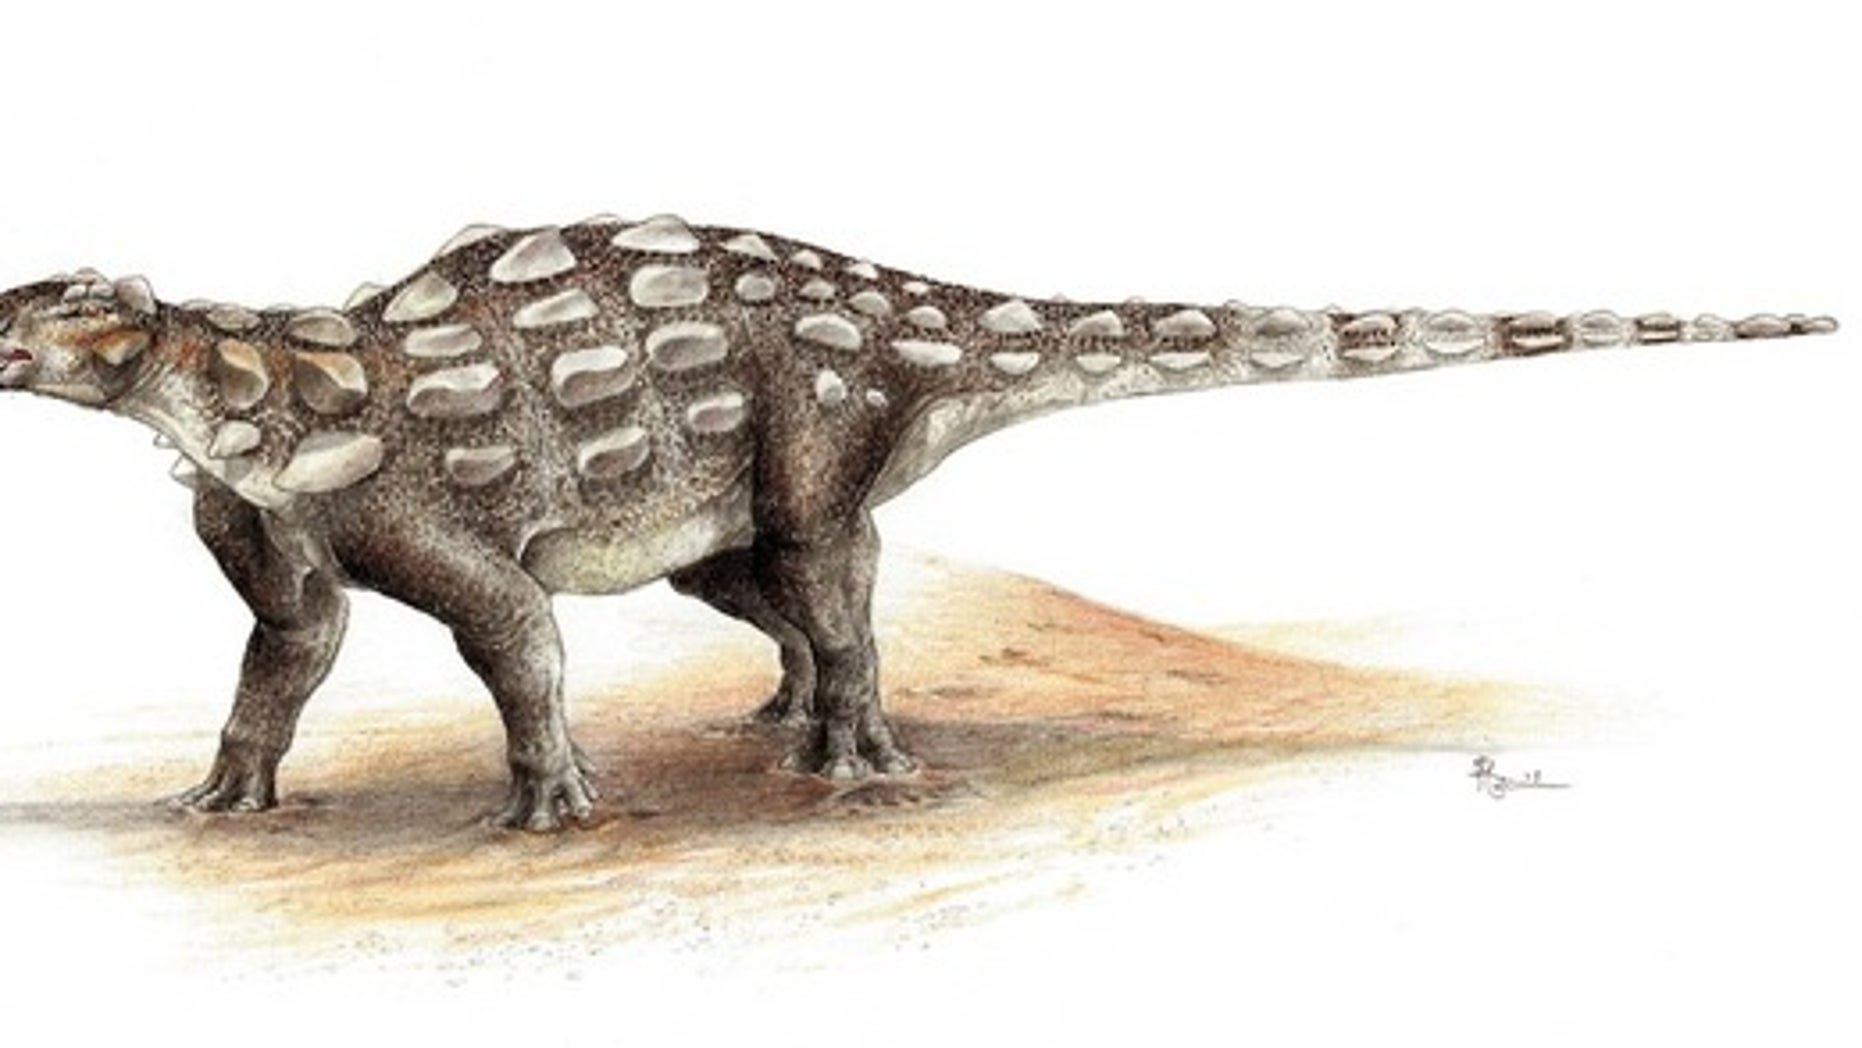 An illustration of <em>Gobisaurus</em>, an ankylosaur with a stiff tail but no knob of bone at the end.